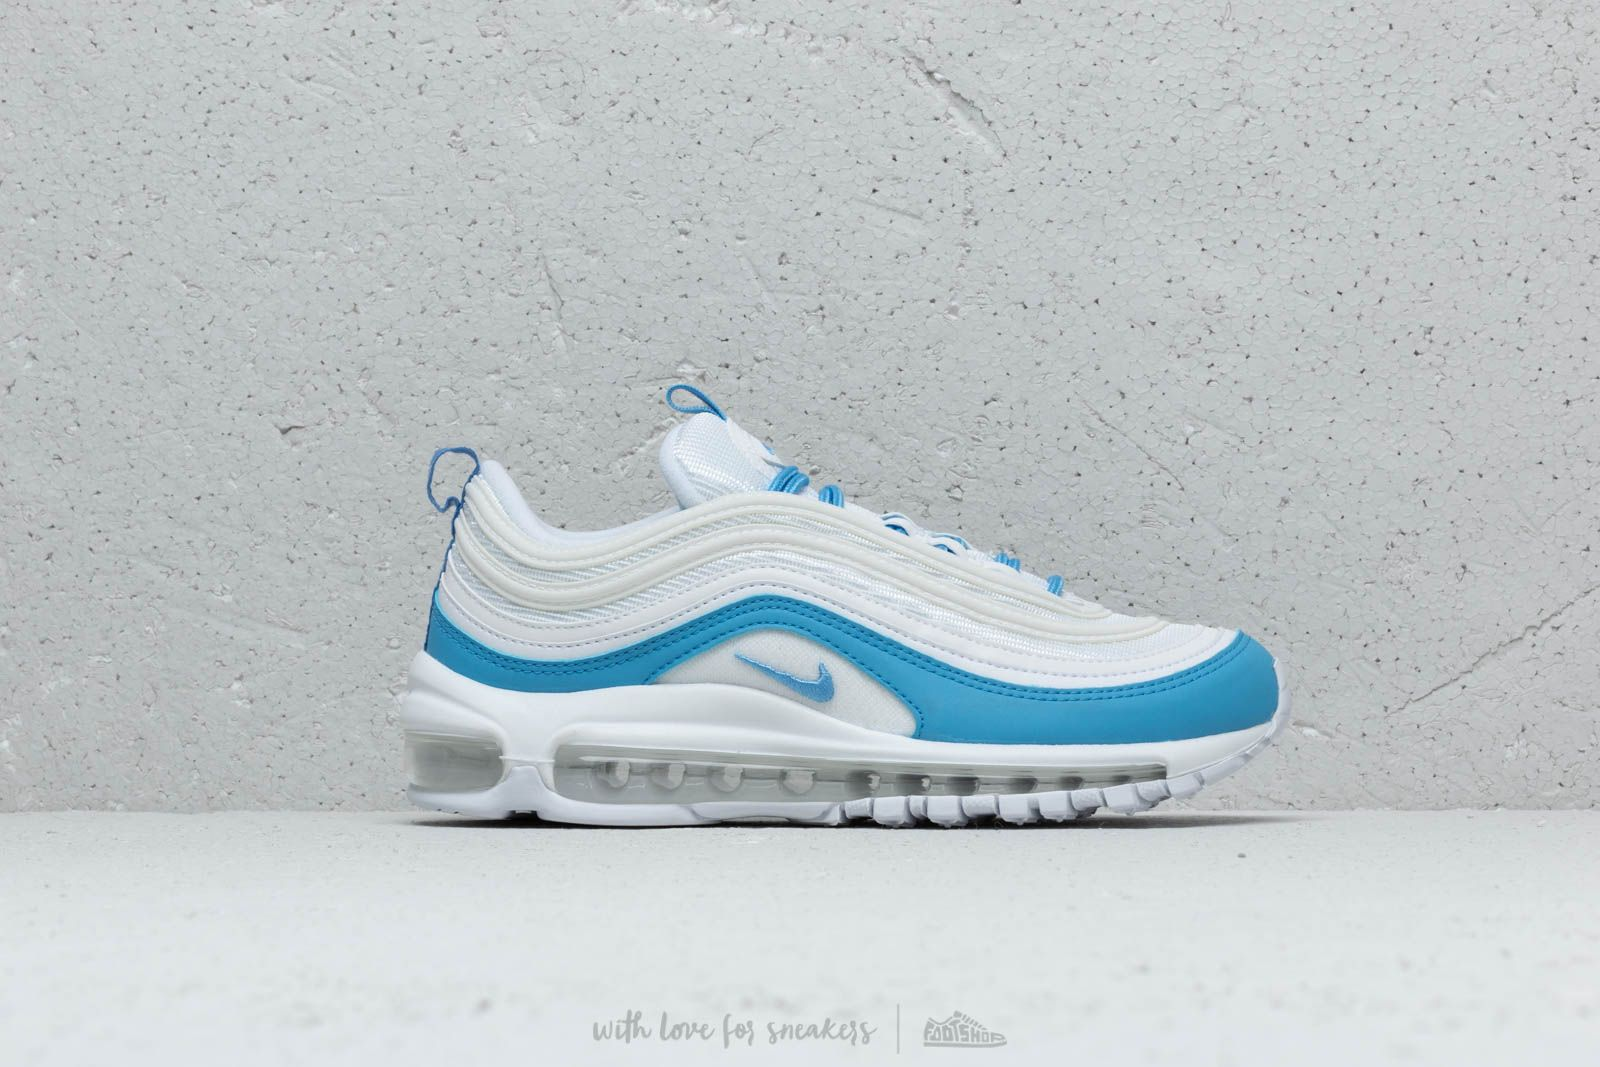 newest 5a6c1 04f92 Nike W Air Max 97 Ess White  University Blue at a great price 169 €